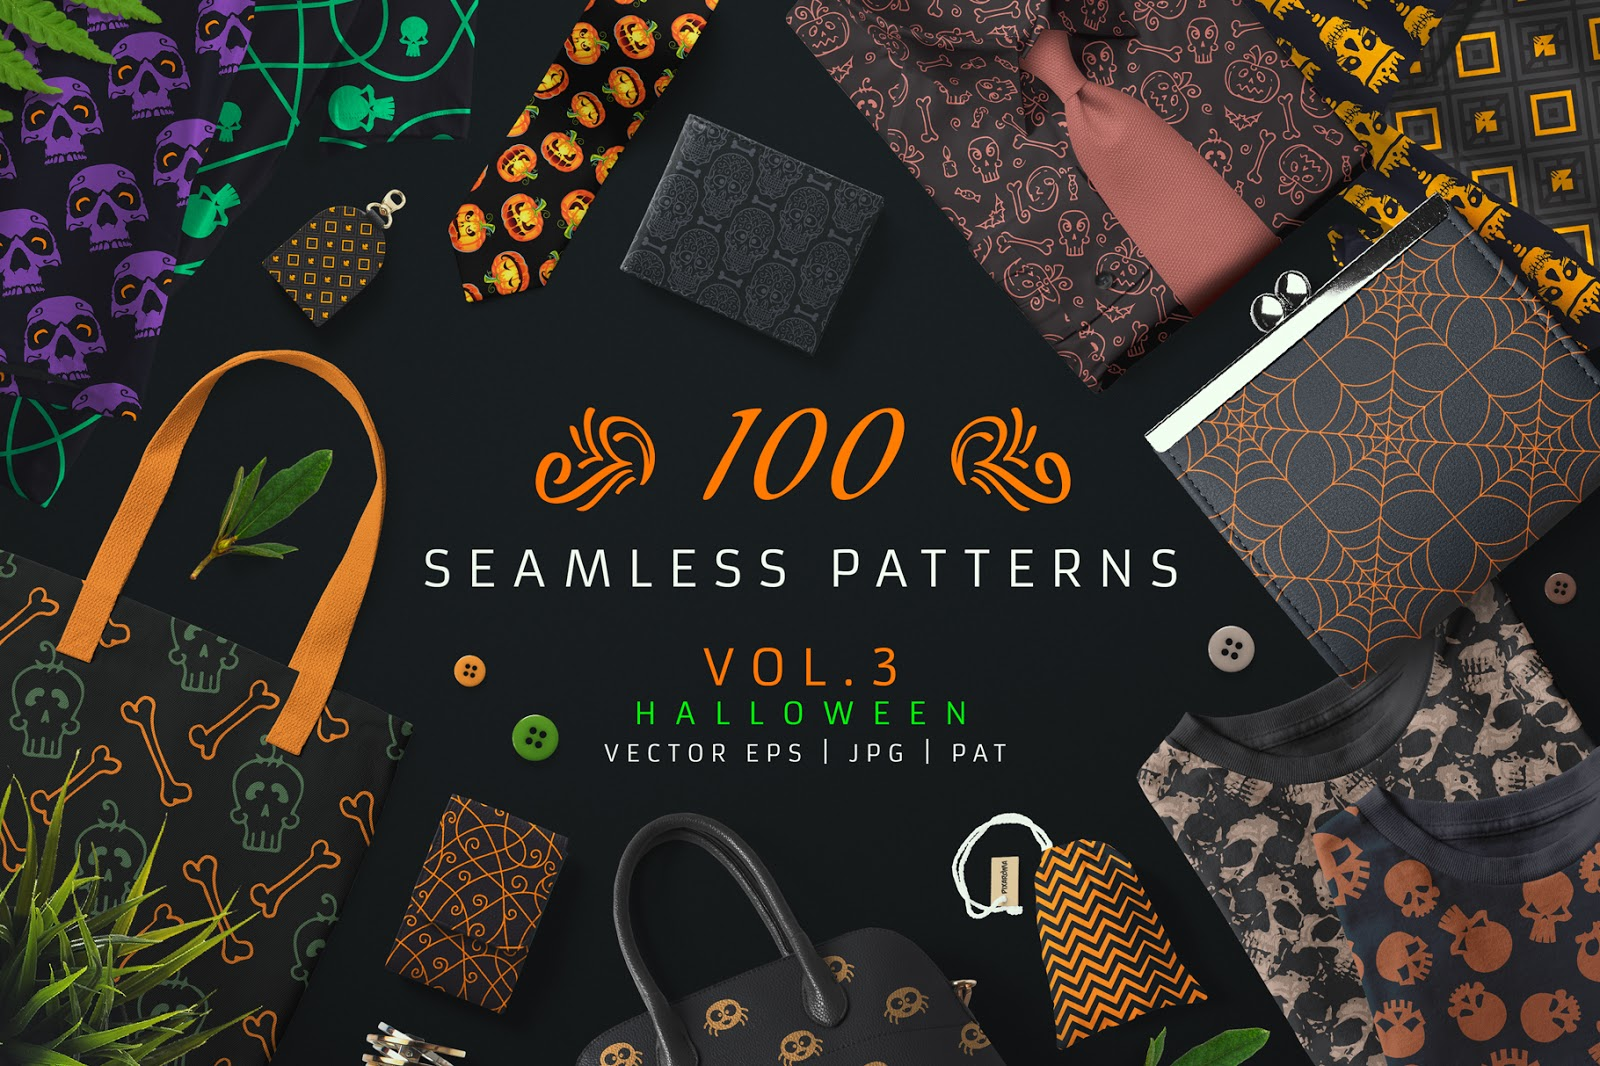 Bag of printing elements on materials More than 1300 items for printing on leather, paper, fabrics and everything